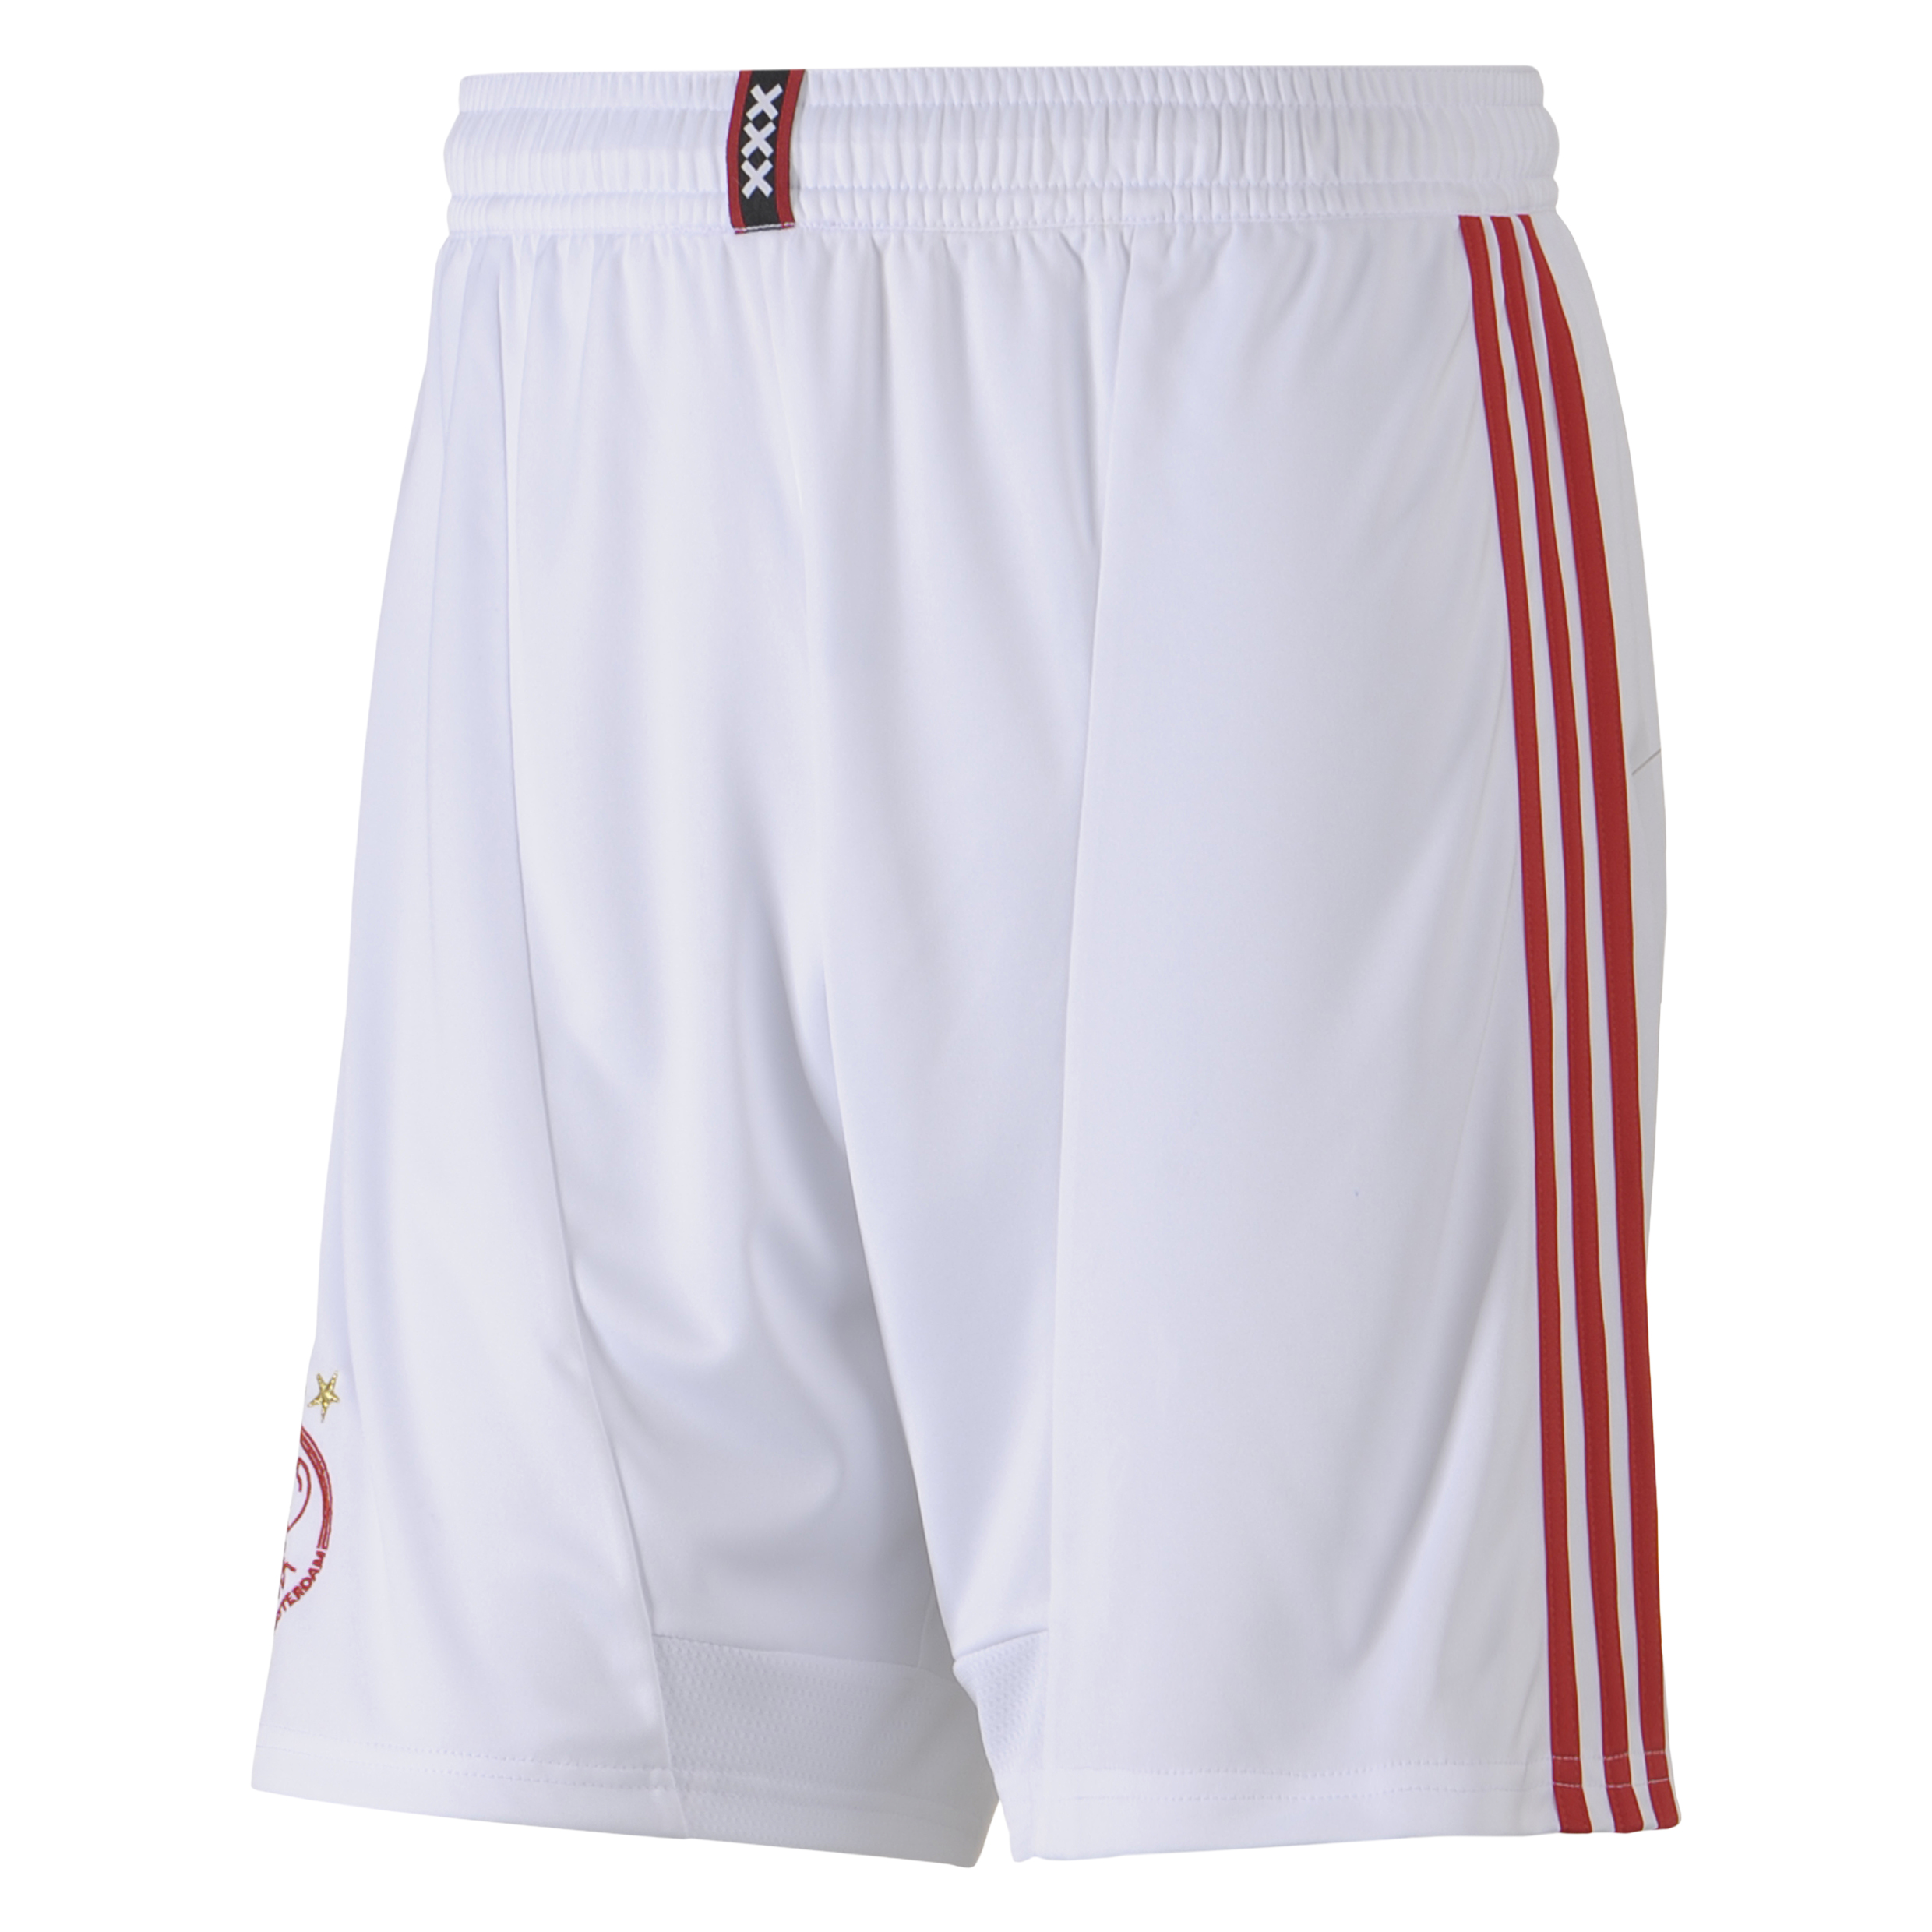 Ajax Home Short 2012/13 - Youths